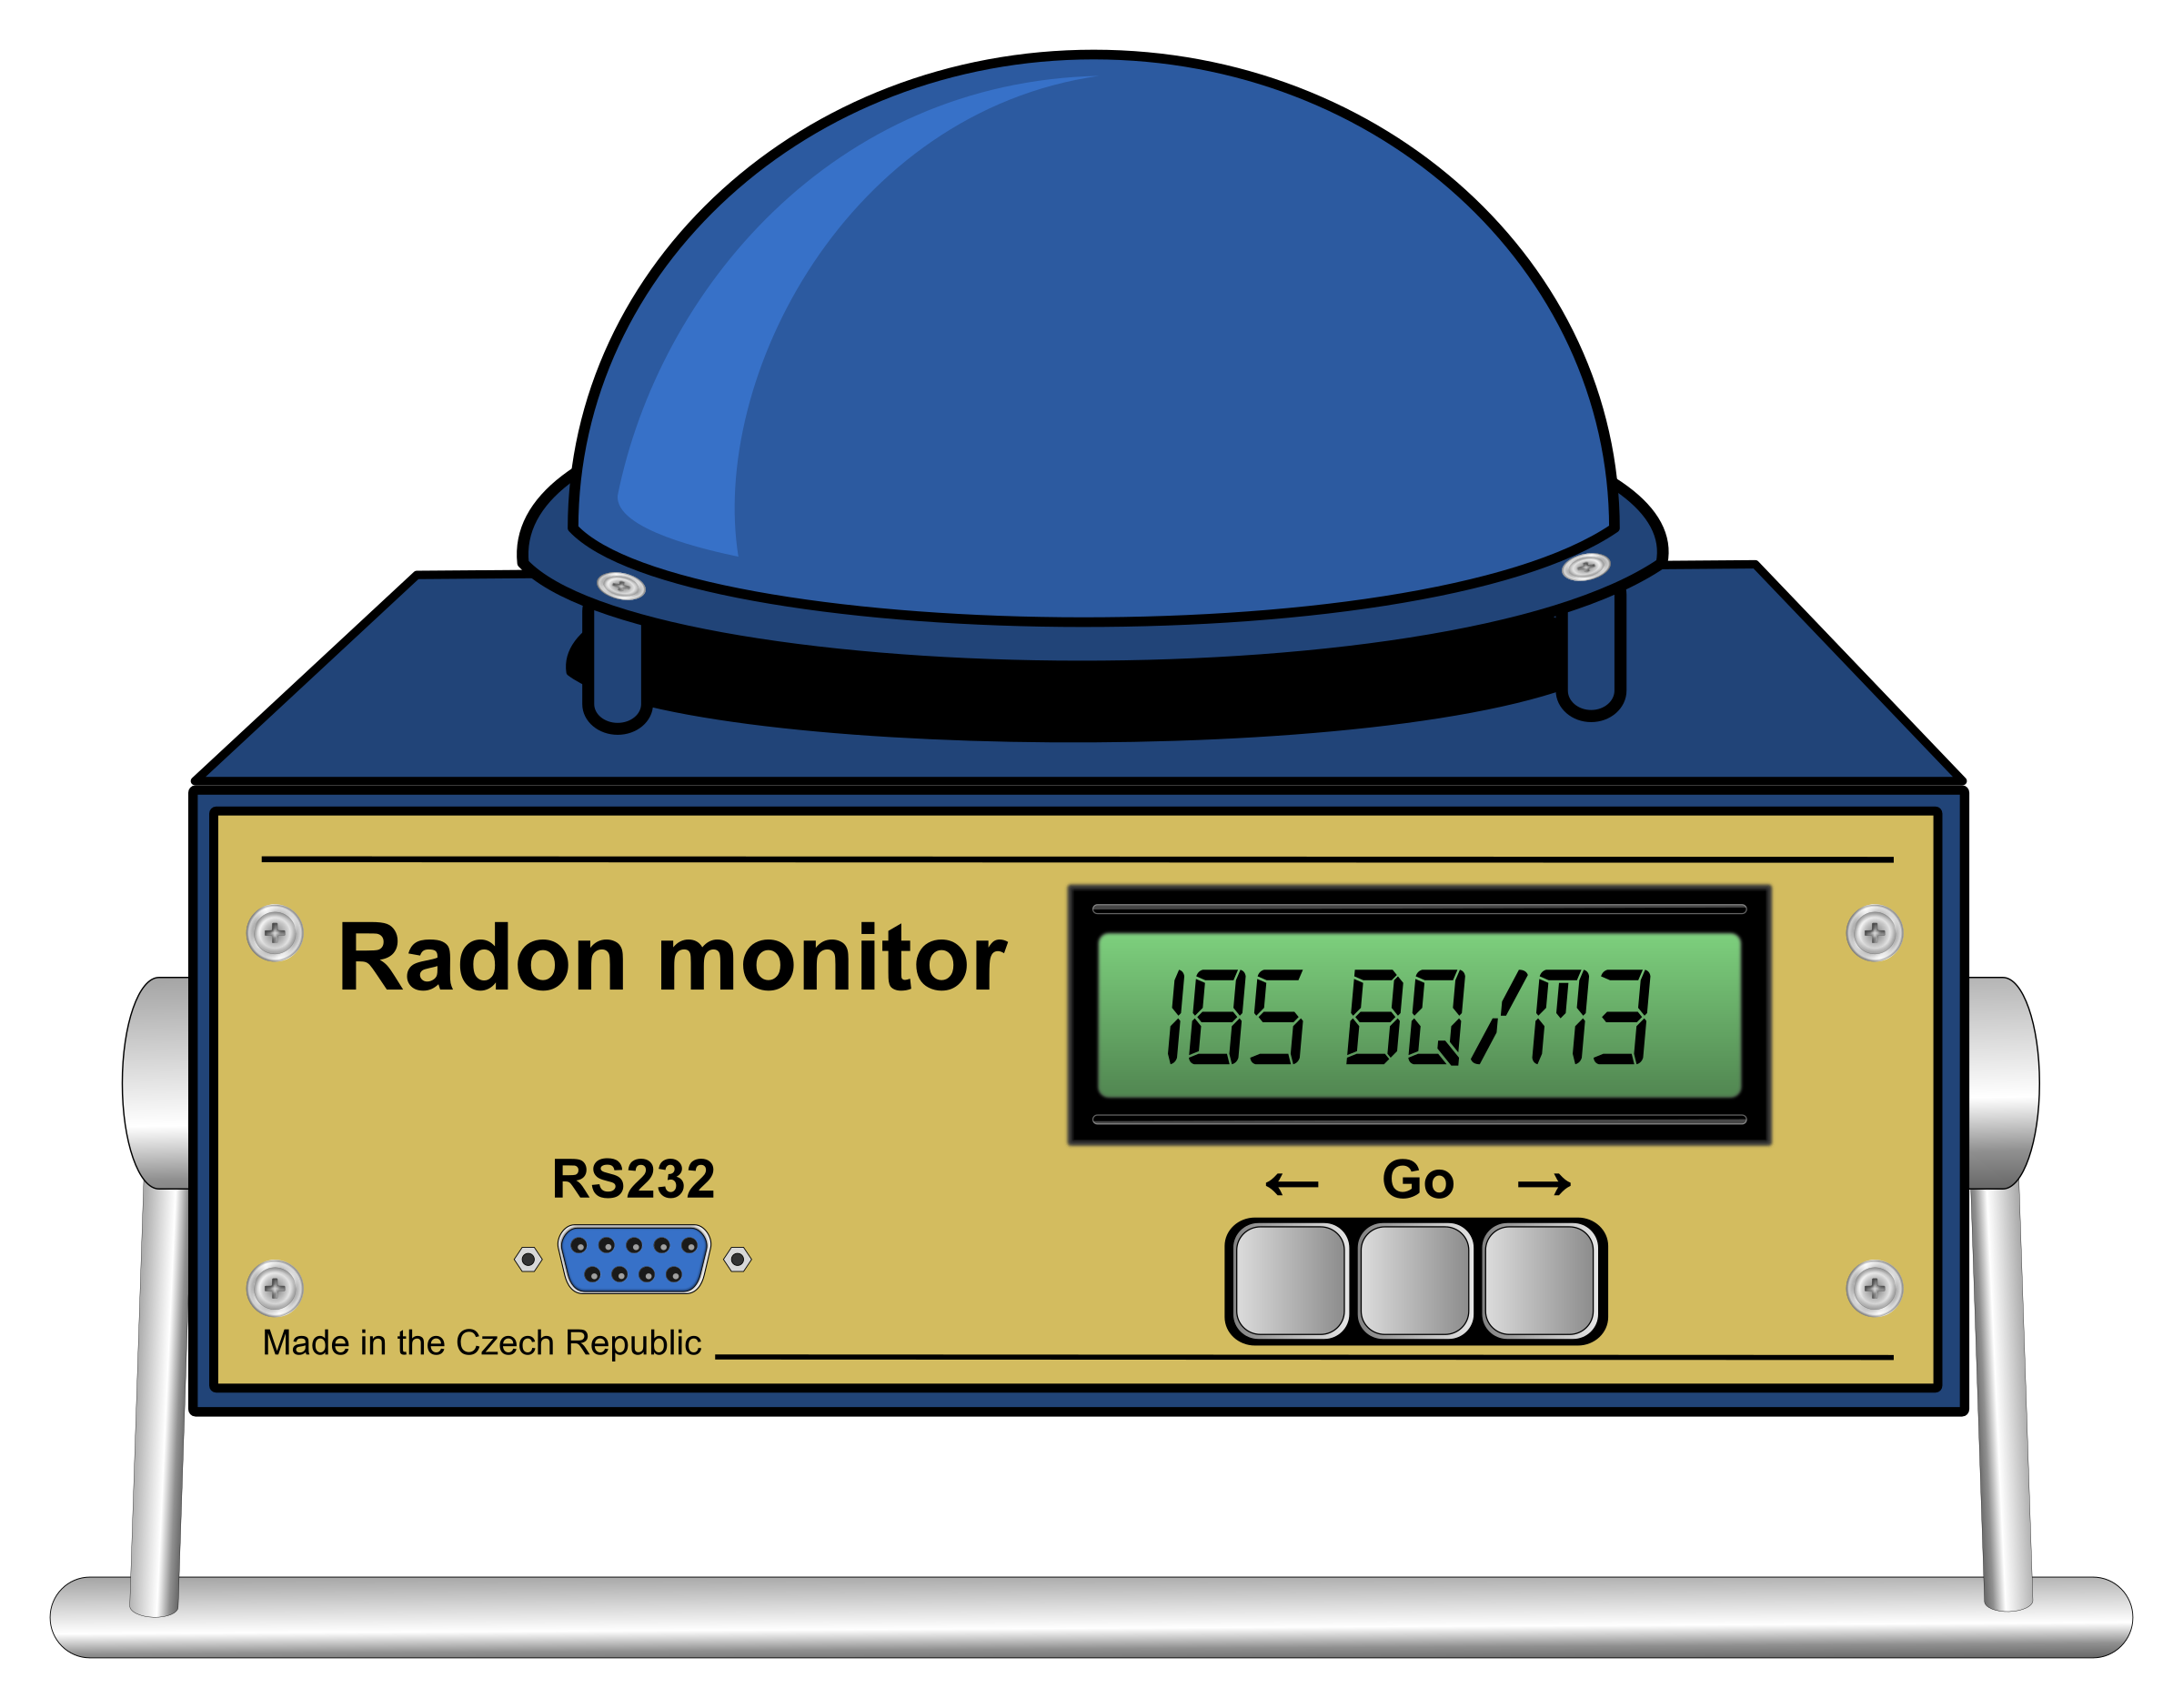 Continuous radon monitor by Juhele